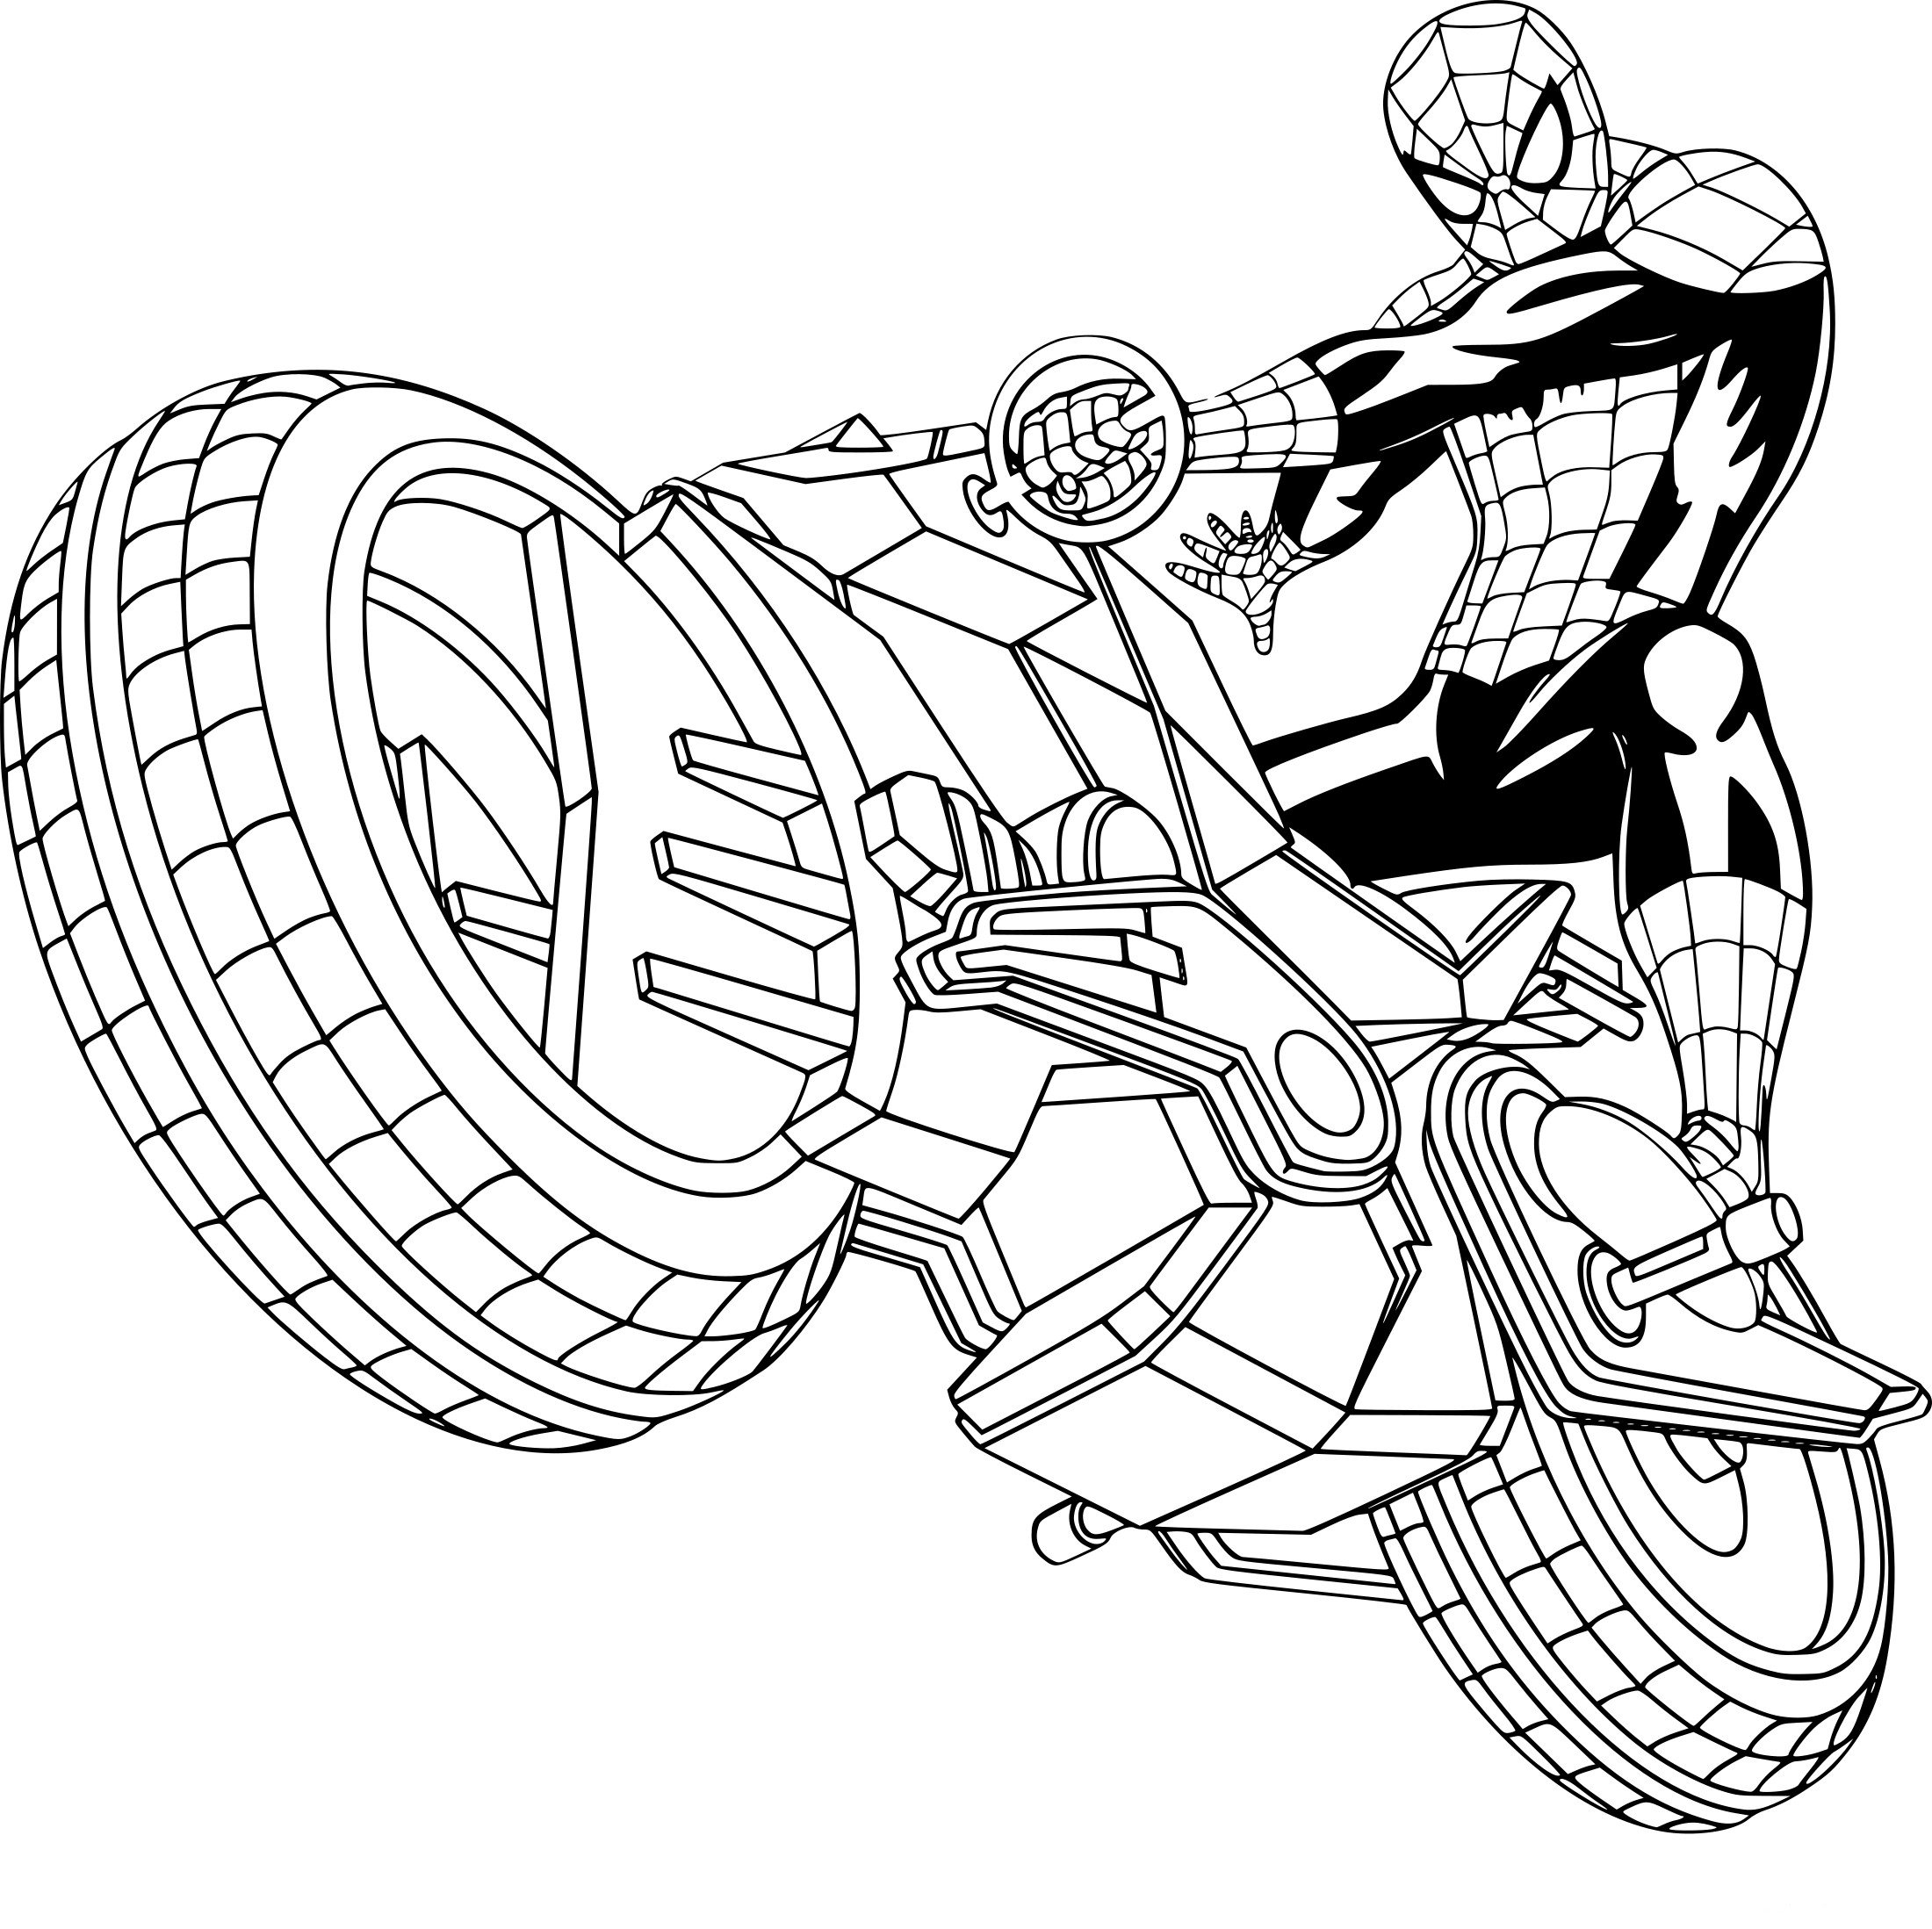 Coloriage Spiderman Moto À Imprimer Sur Coloriages destiné Coloriage Moto